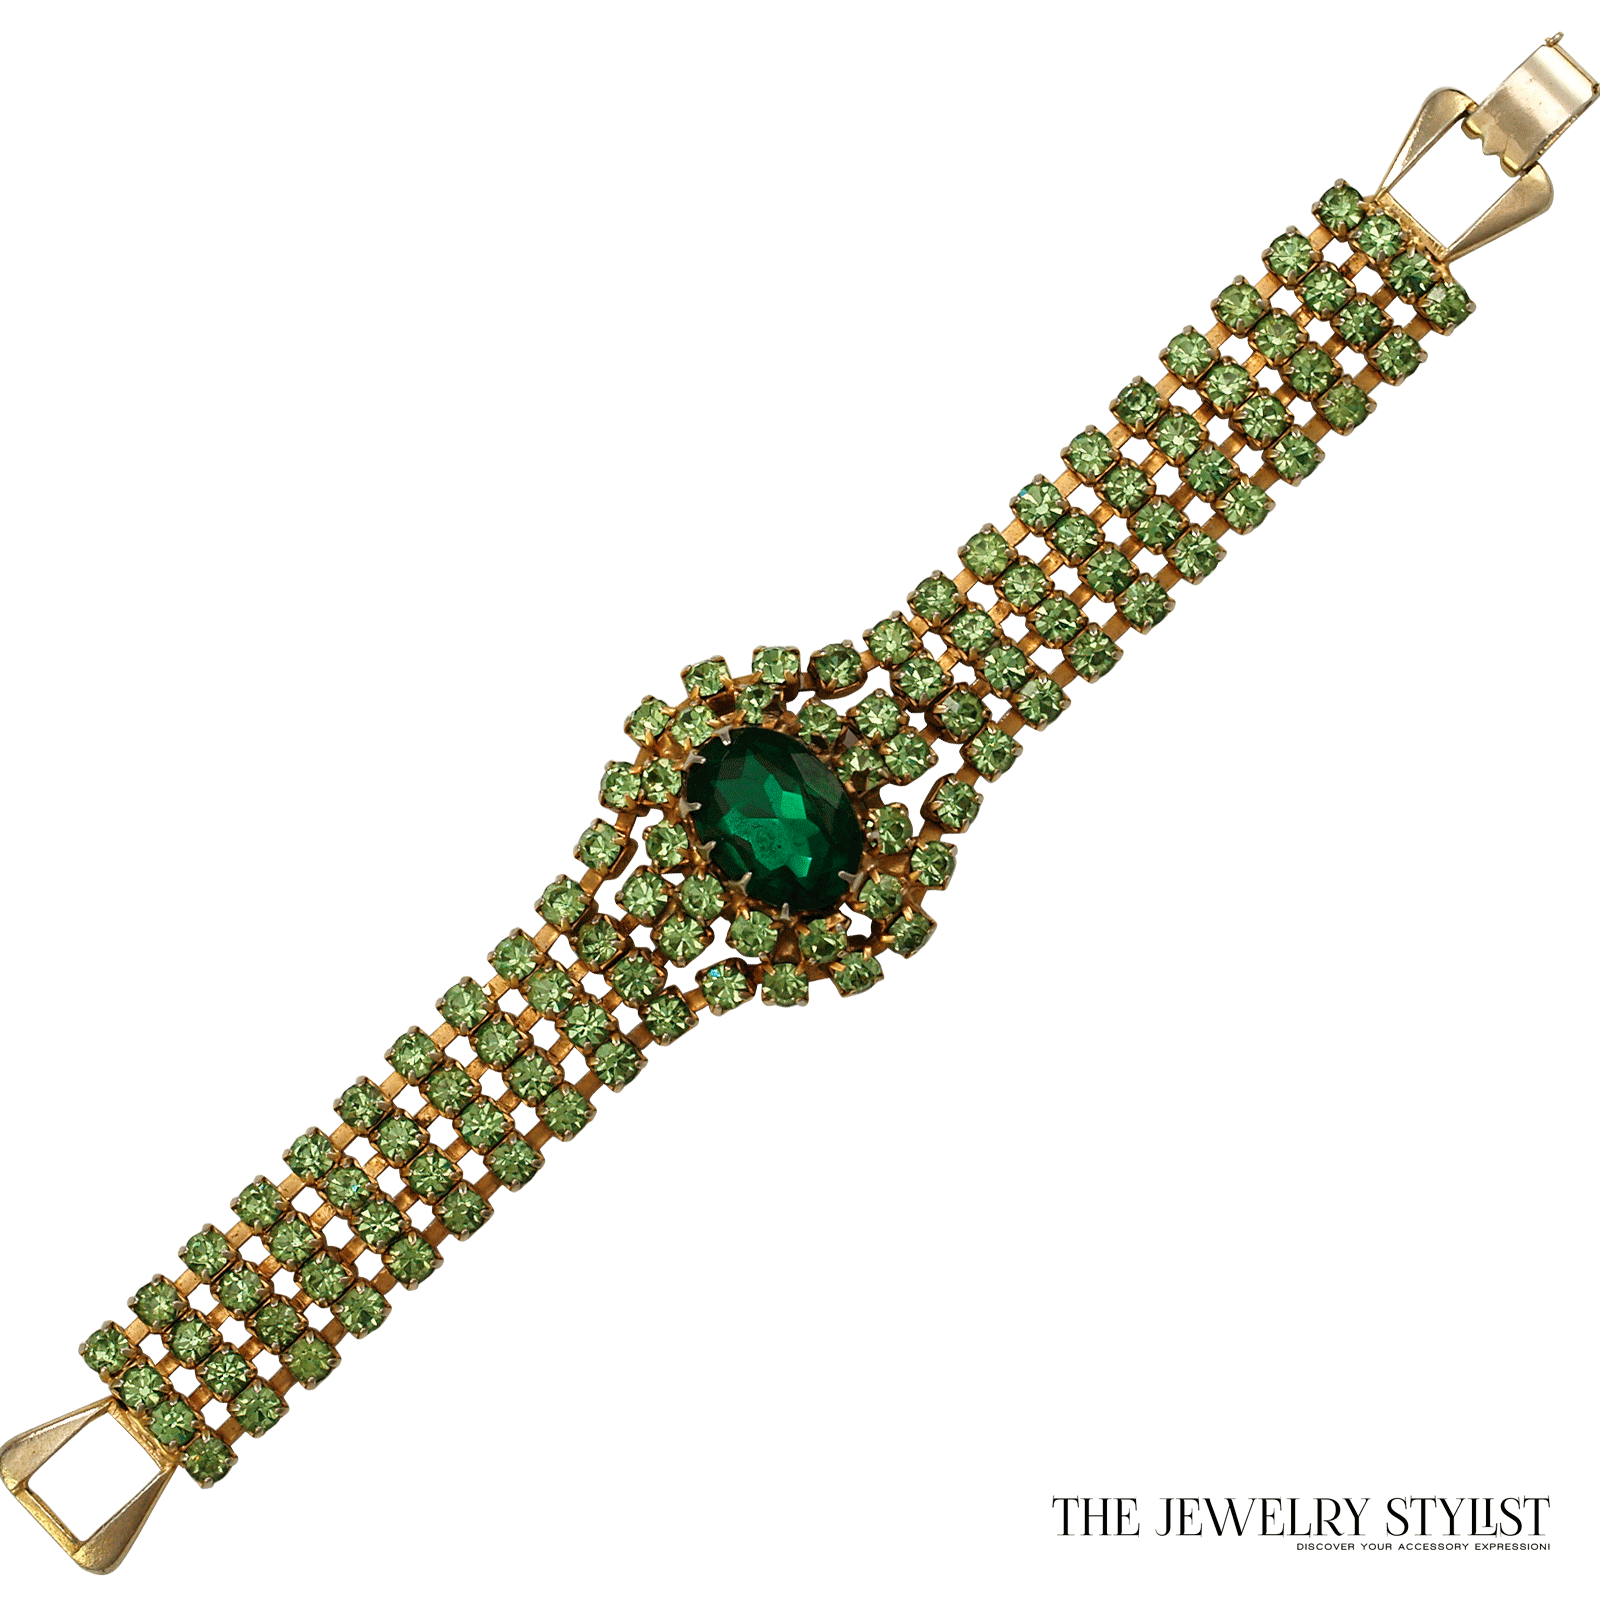 Vintage 1950s Peridot And Emerald Colored Rhinestone. Rolex Datejust Bracelet. Local Jewelry Stores. Thick Band Wedding Rings. Penguin Watches. Father Rings. Comfort Fit Wedding Rings. Star Sapphire Rings. Princess Cut Diamond Pendant